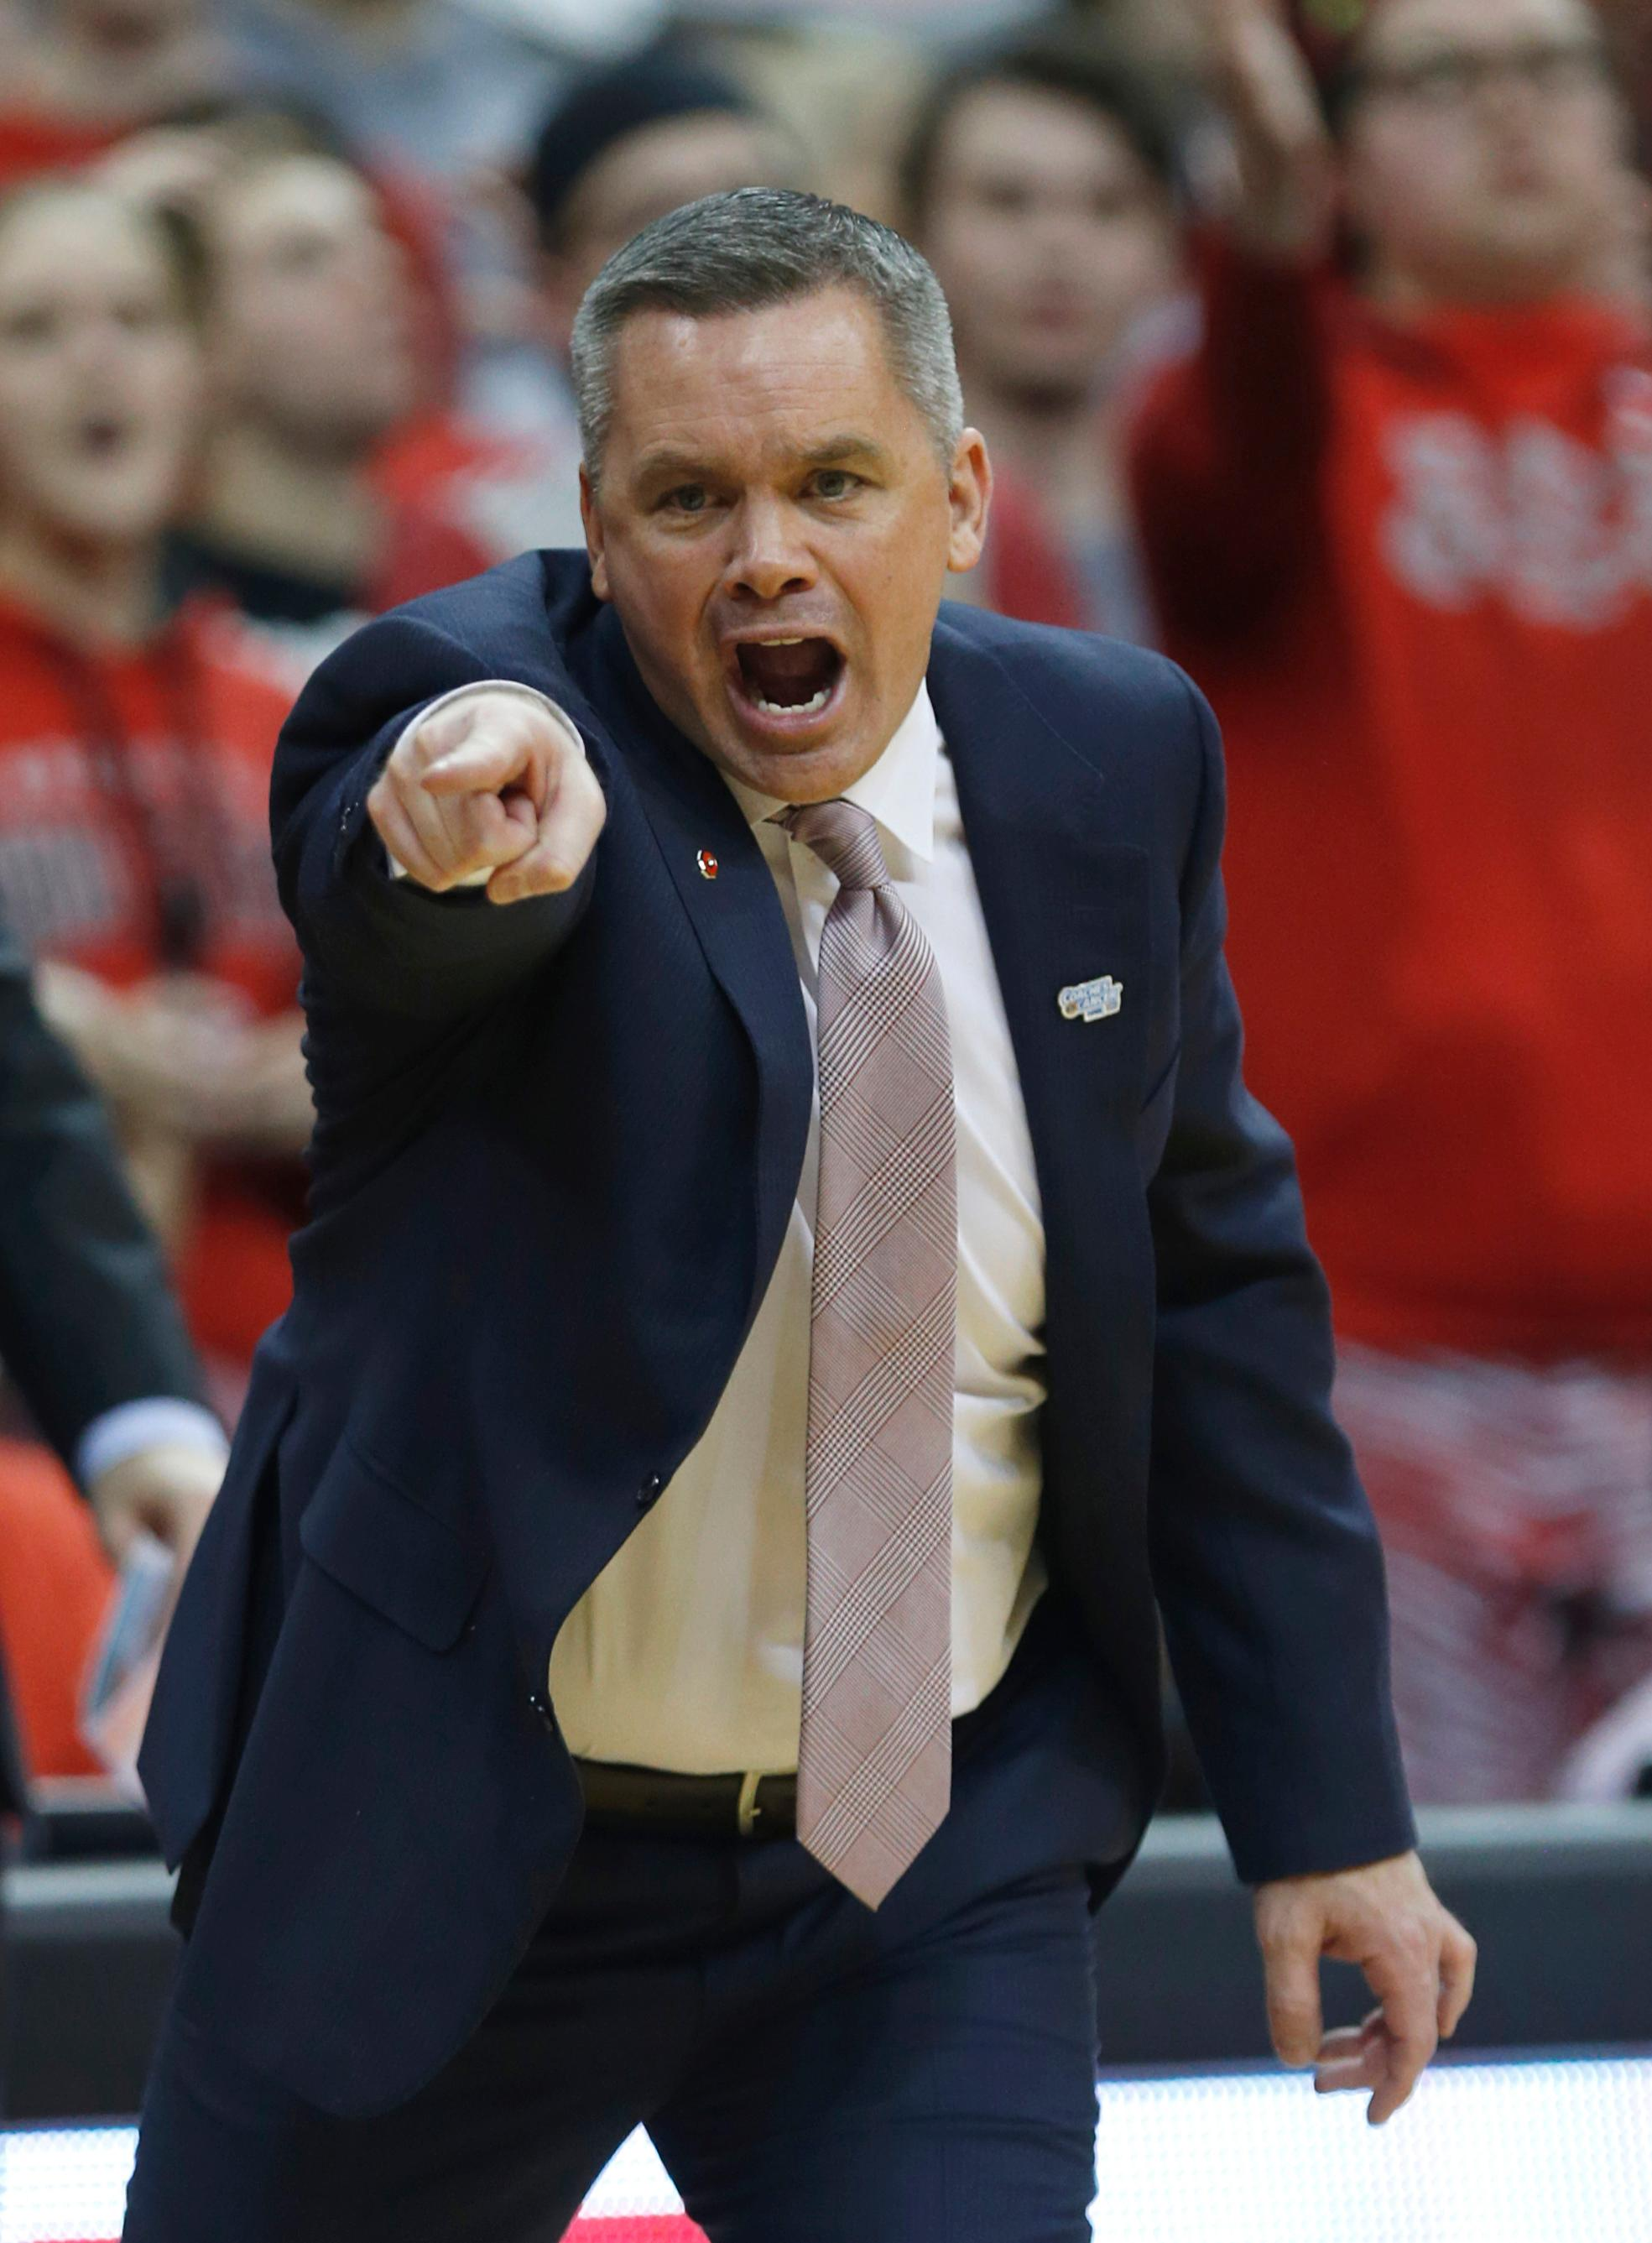 FILE - In this Jan. 25, 2018, file photo, Ohio State coach Chris Holtmann reacts to a call during the second half of an NCAA college basketball game against Penn State, in Columbus, Ohio. Ohio State's Keita Bates-Diop is The Associated Press player of the year in the Big Ten Conference and the Buckeyes' Chris Holtmann is its coach of the year. Bates-Diop and Purdue's Carsen Edwards were unanimous picks to the AP All-Big Ten team, also announced Wednesday, Feb. 28, 2018, in voting by 12 journalists covering the conference. (AP Photo/Paul Vernon, File)